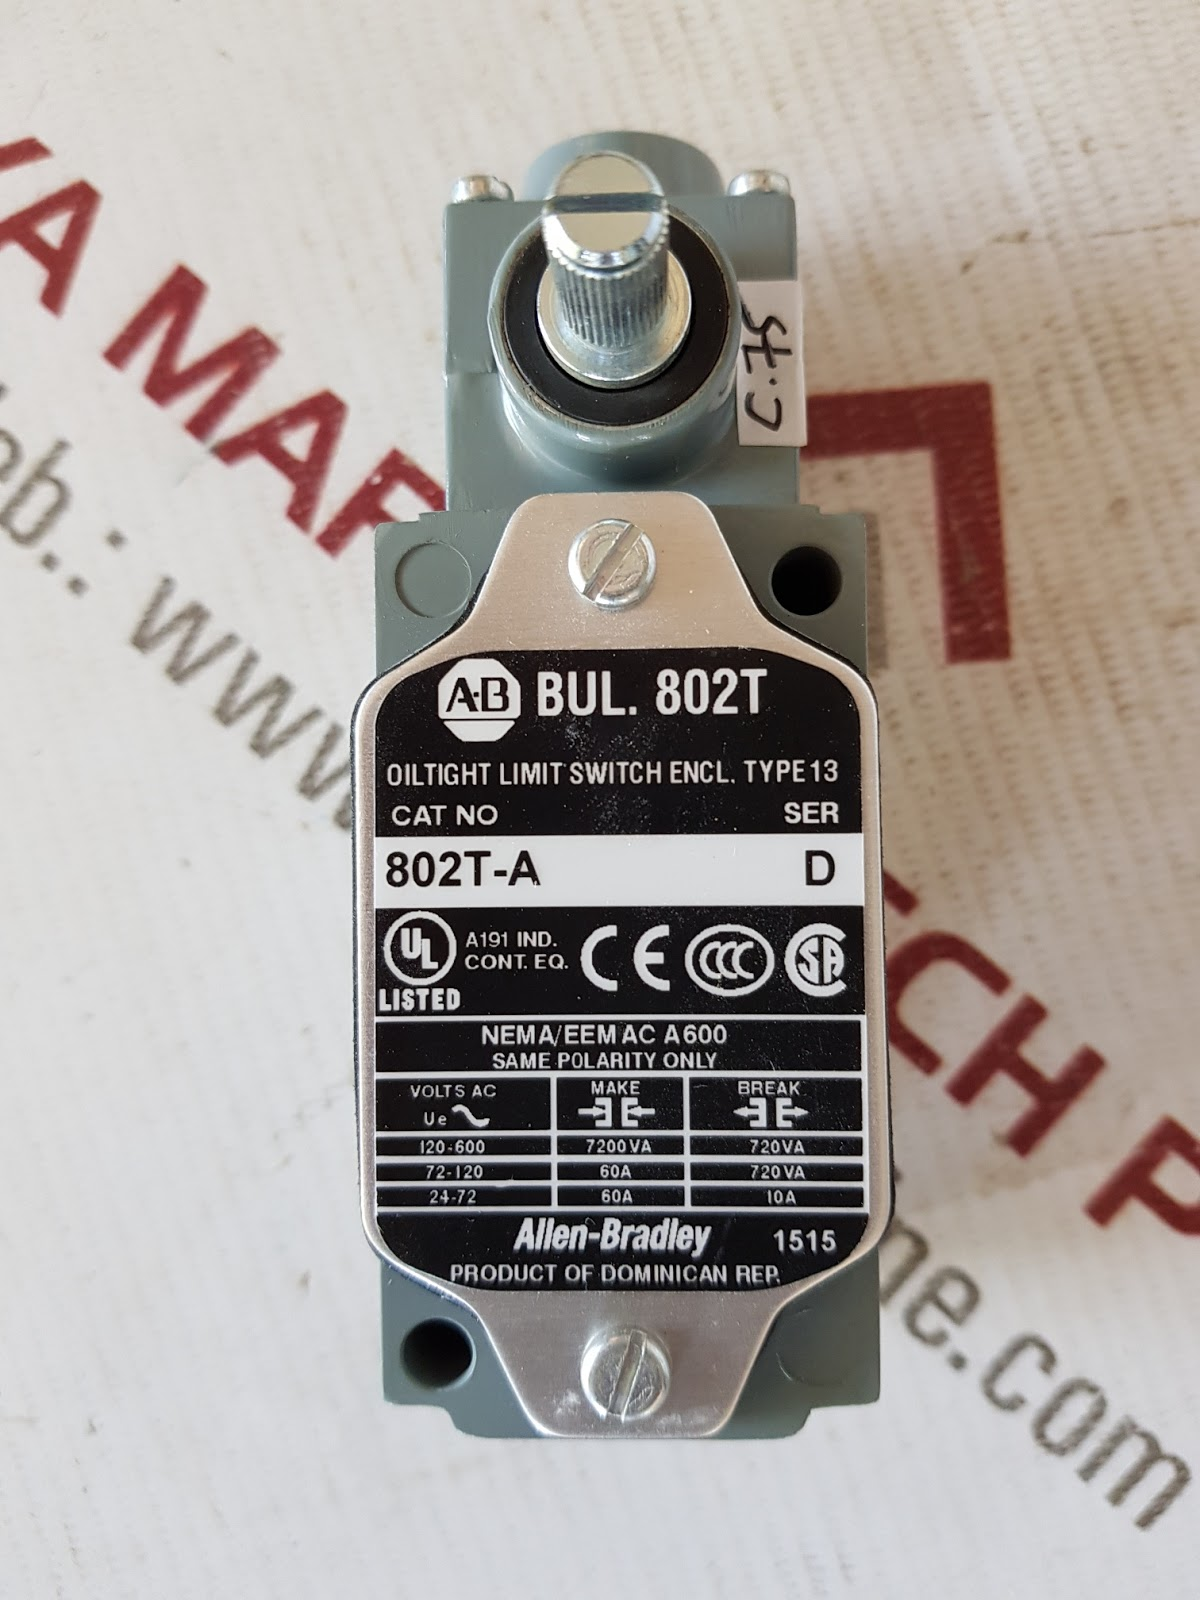 a b bul 802t limit switch with operator and roller arm type 13 802t a nema eem ac a 600 a191 a173a 1515 acct 7254000 condition new 1 pcs [ 1200 x 1600 Pixel ]